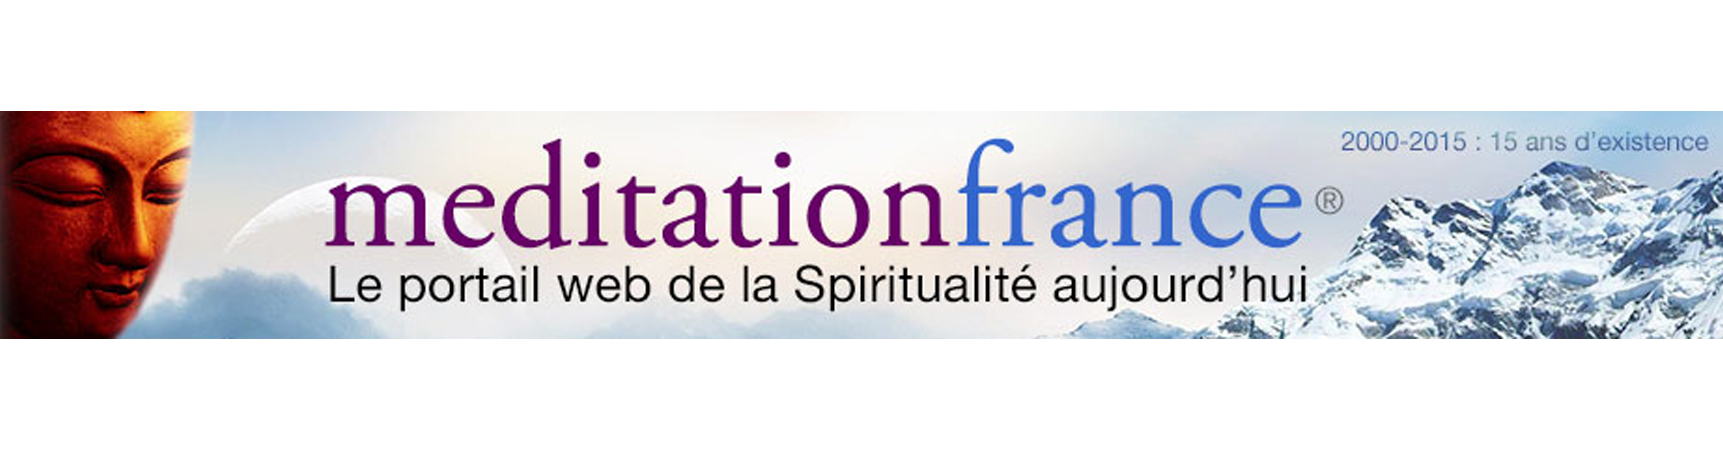 Interview avec Méditation France